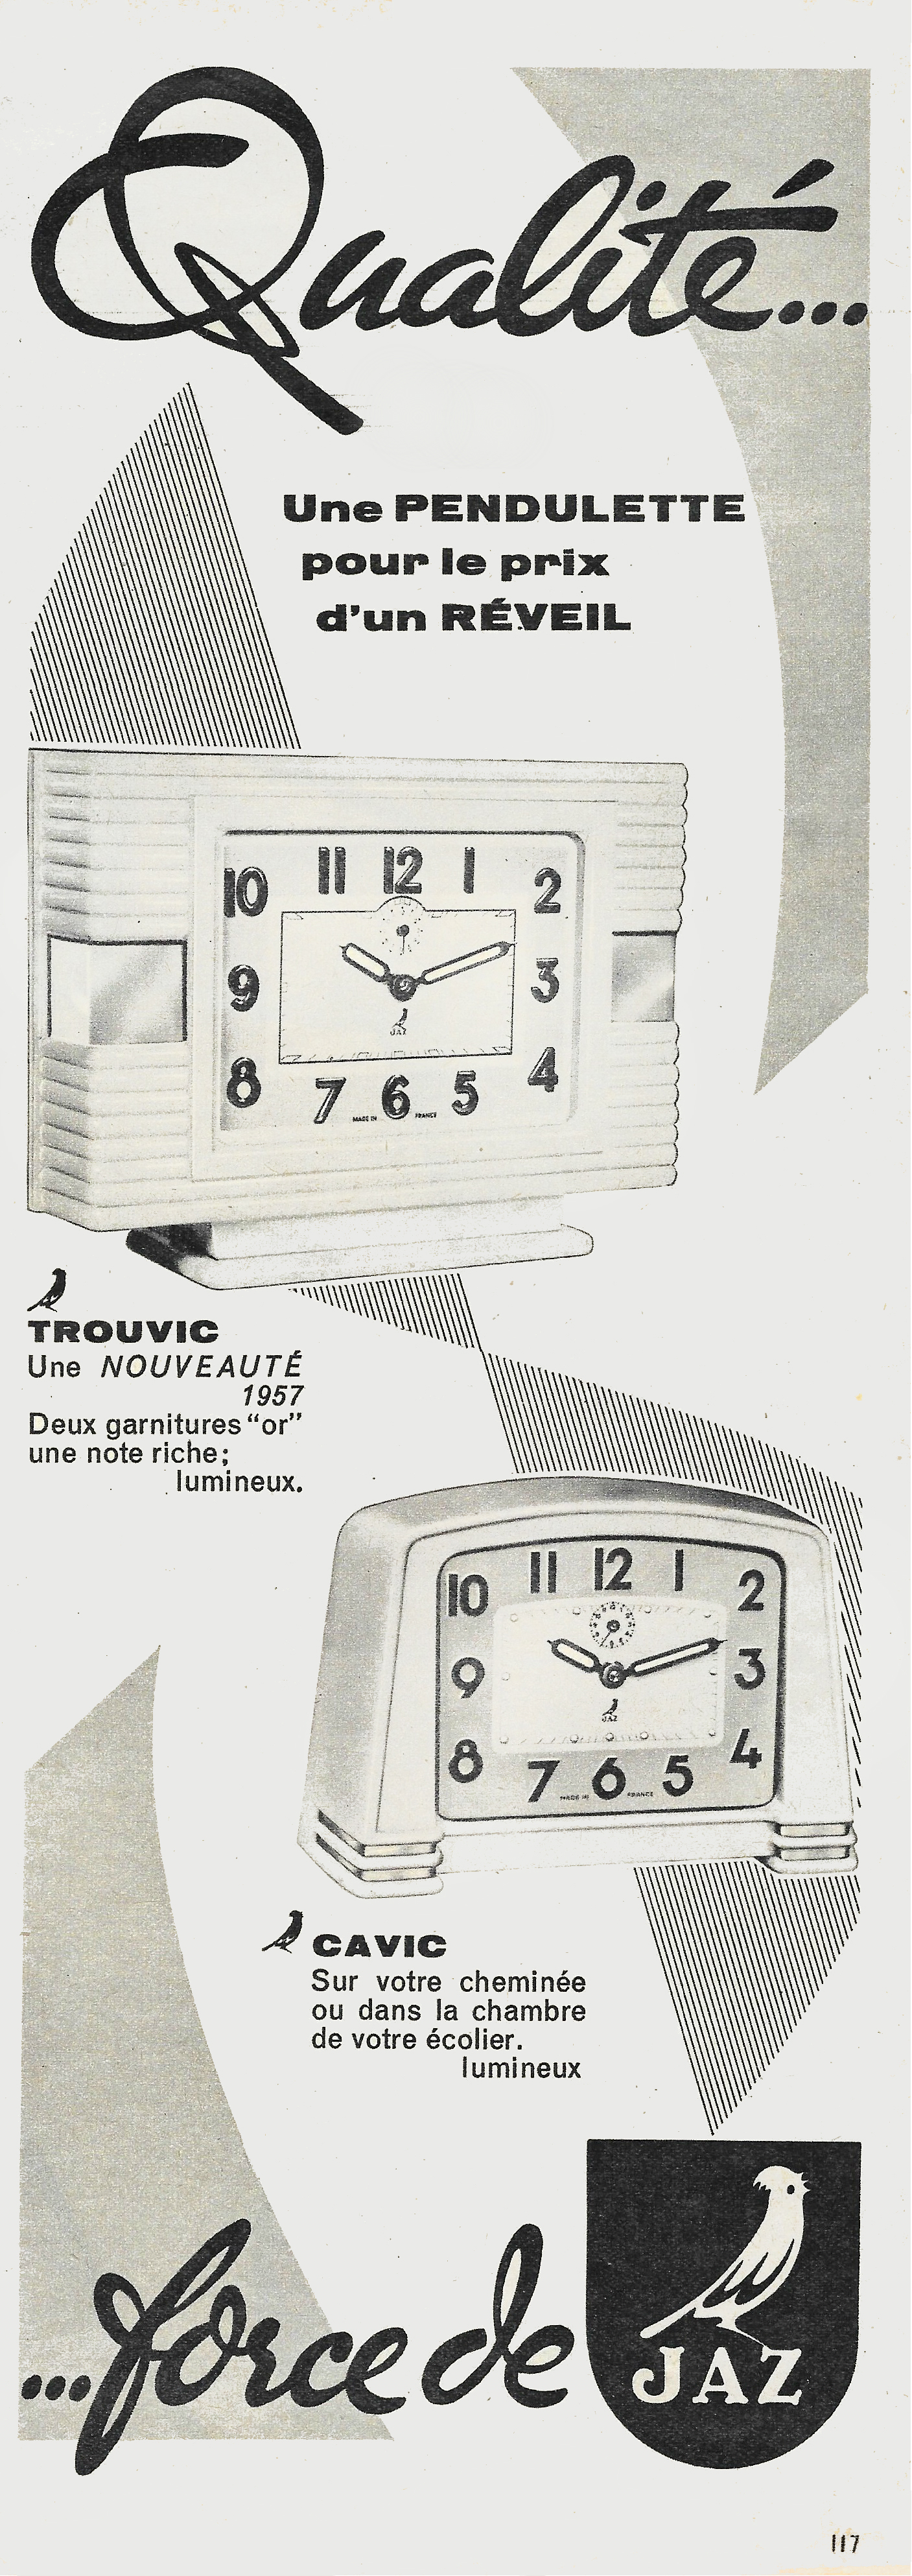 trouvic cavic pub 1957